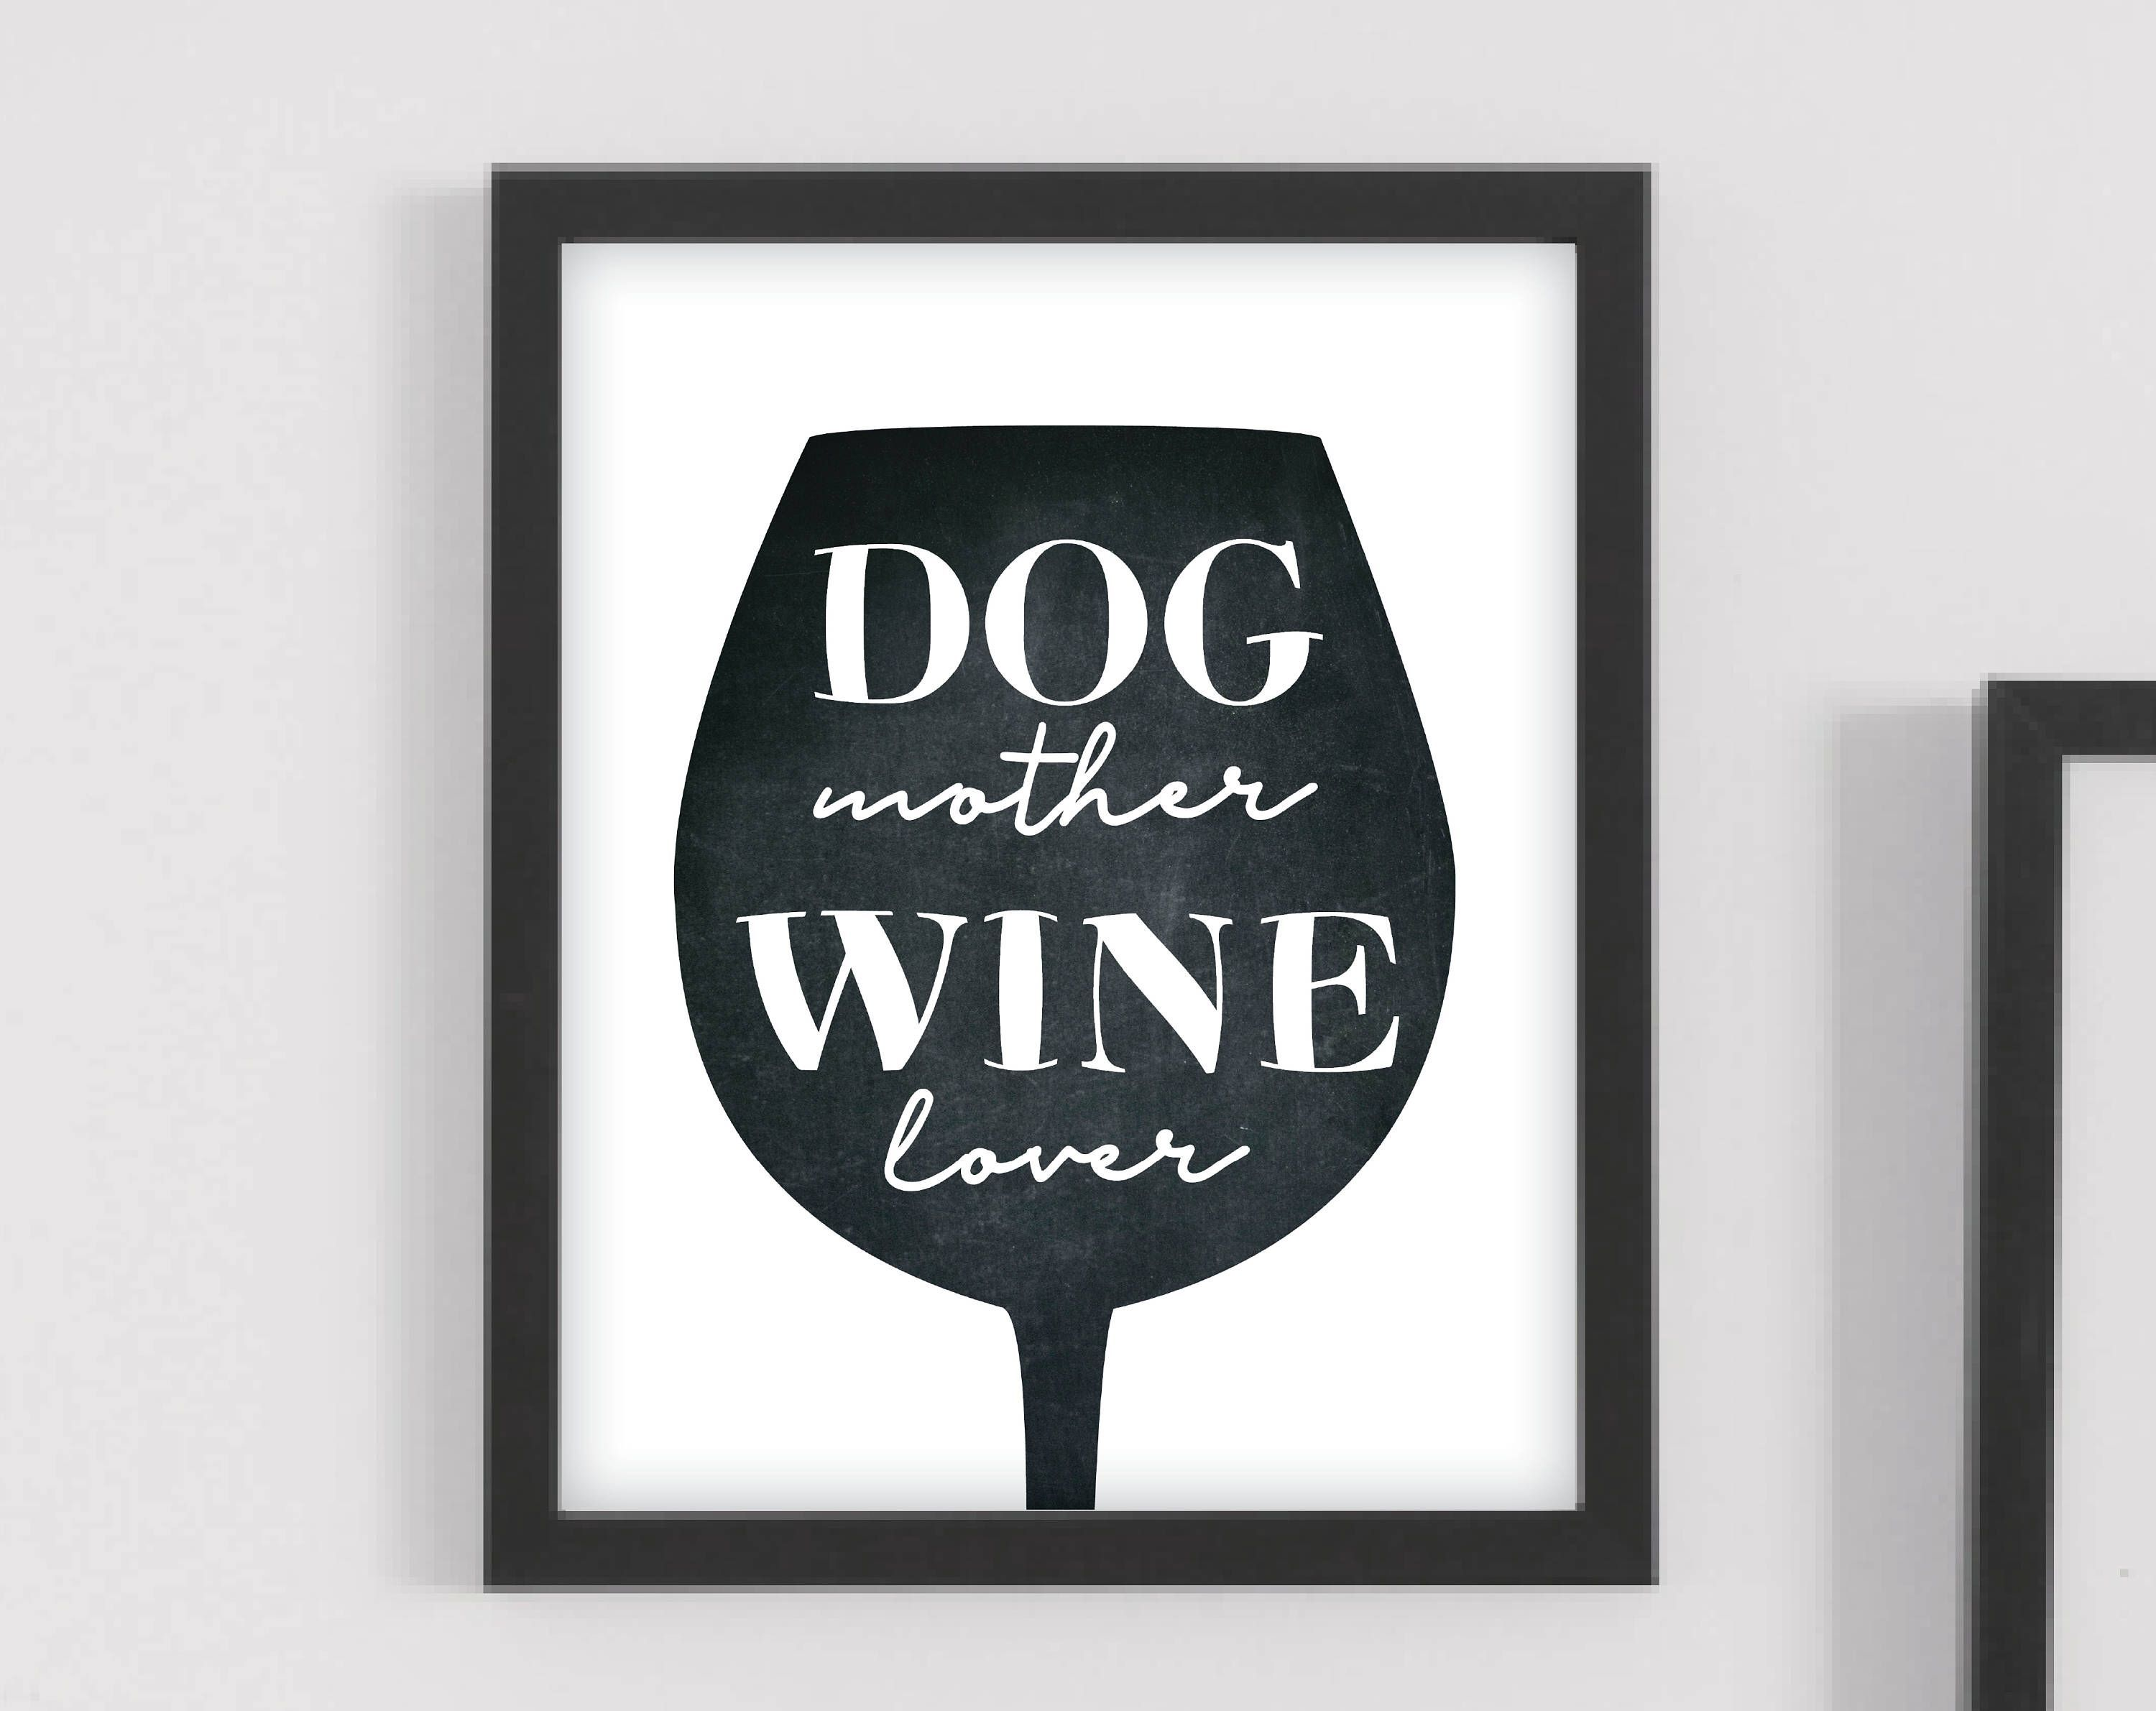 Dog mother wine loverwine wall art wine lover gift wine wall